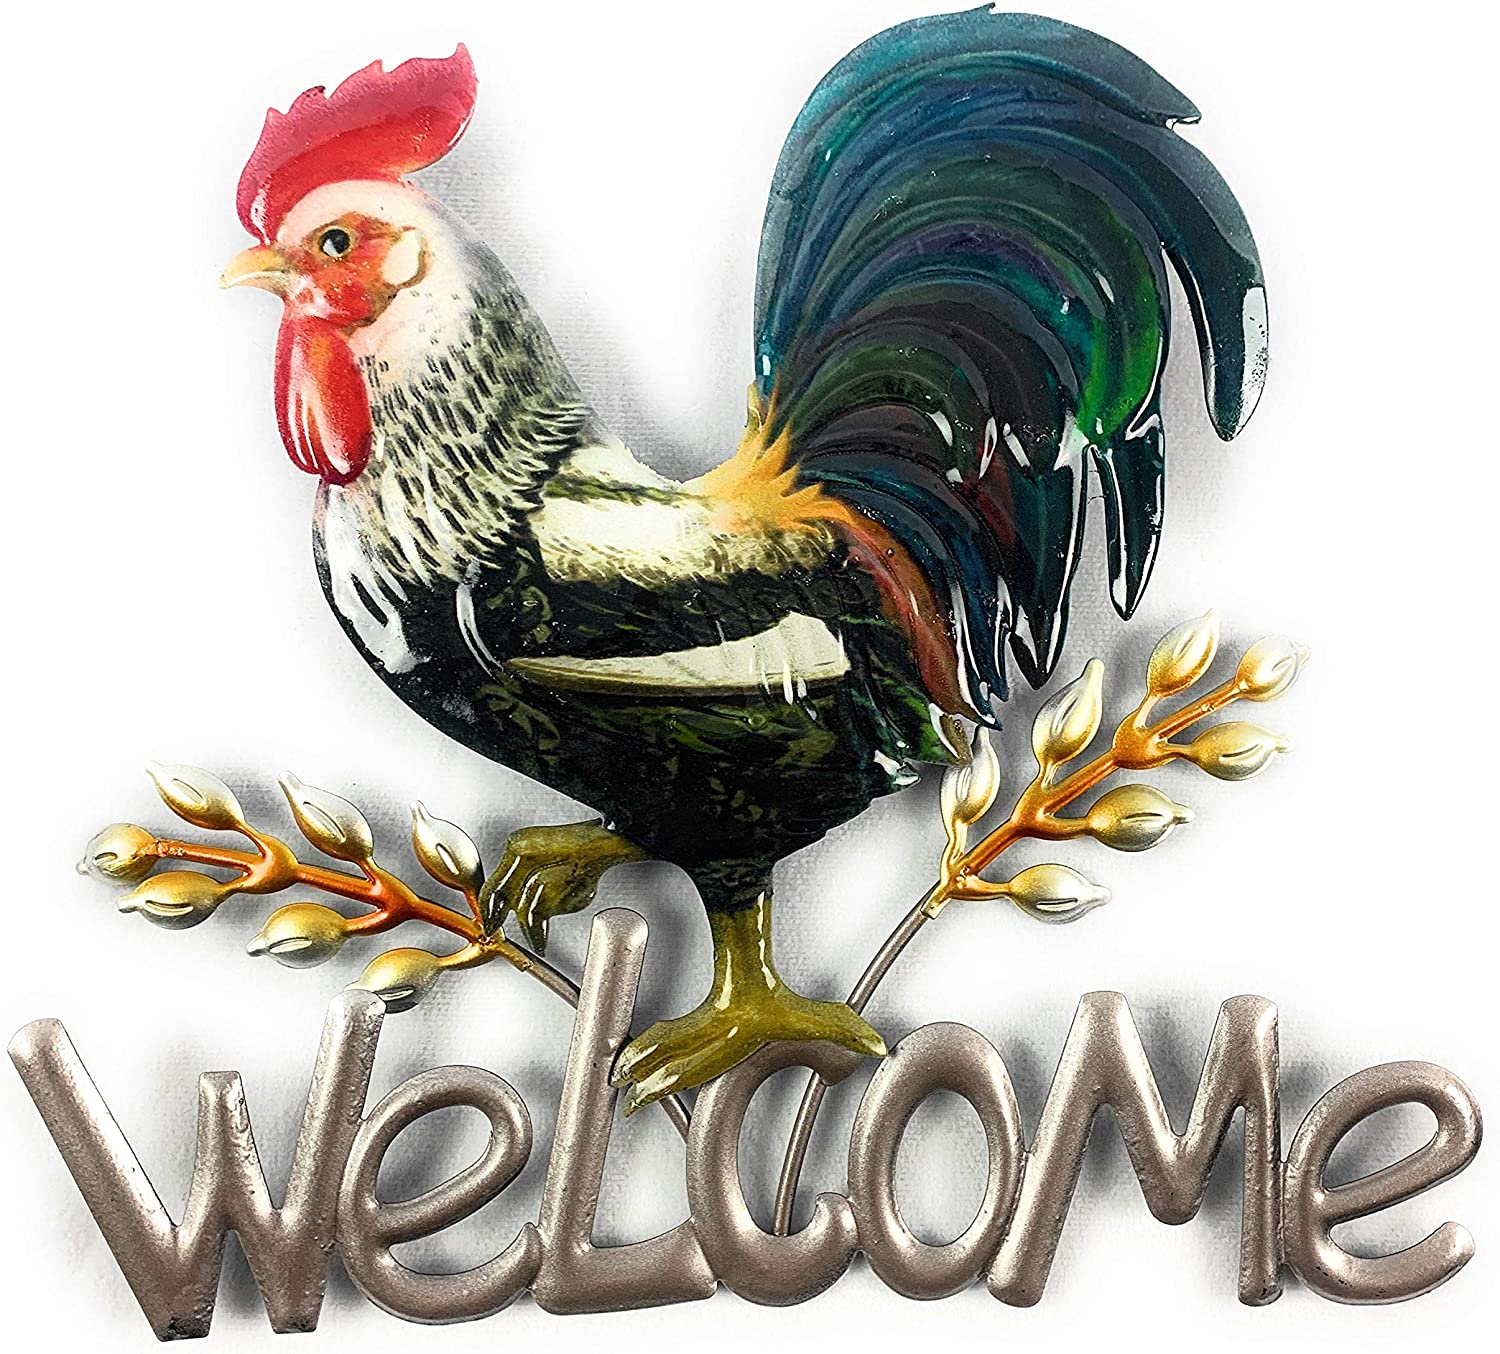 GSC Metal Rooster Welcome Sign 3D Decor Plaque Hanging Sculpture for Outside On Porch Patio Front Door Or Inside in Entryway Kitchen Living Room Or Farmhouse, 10.5X11.5 inches